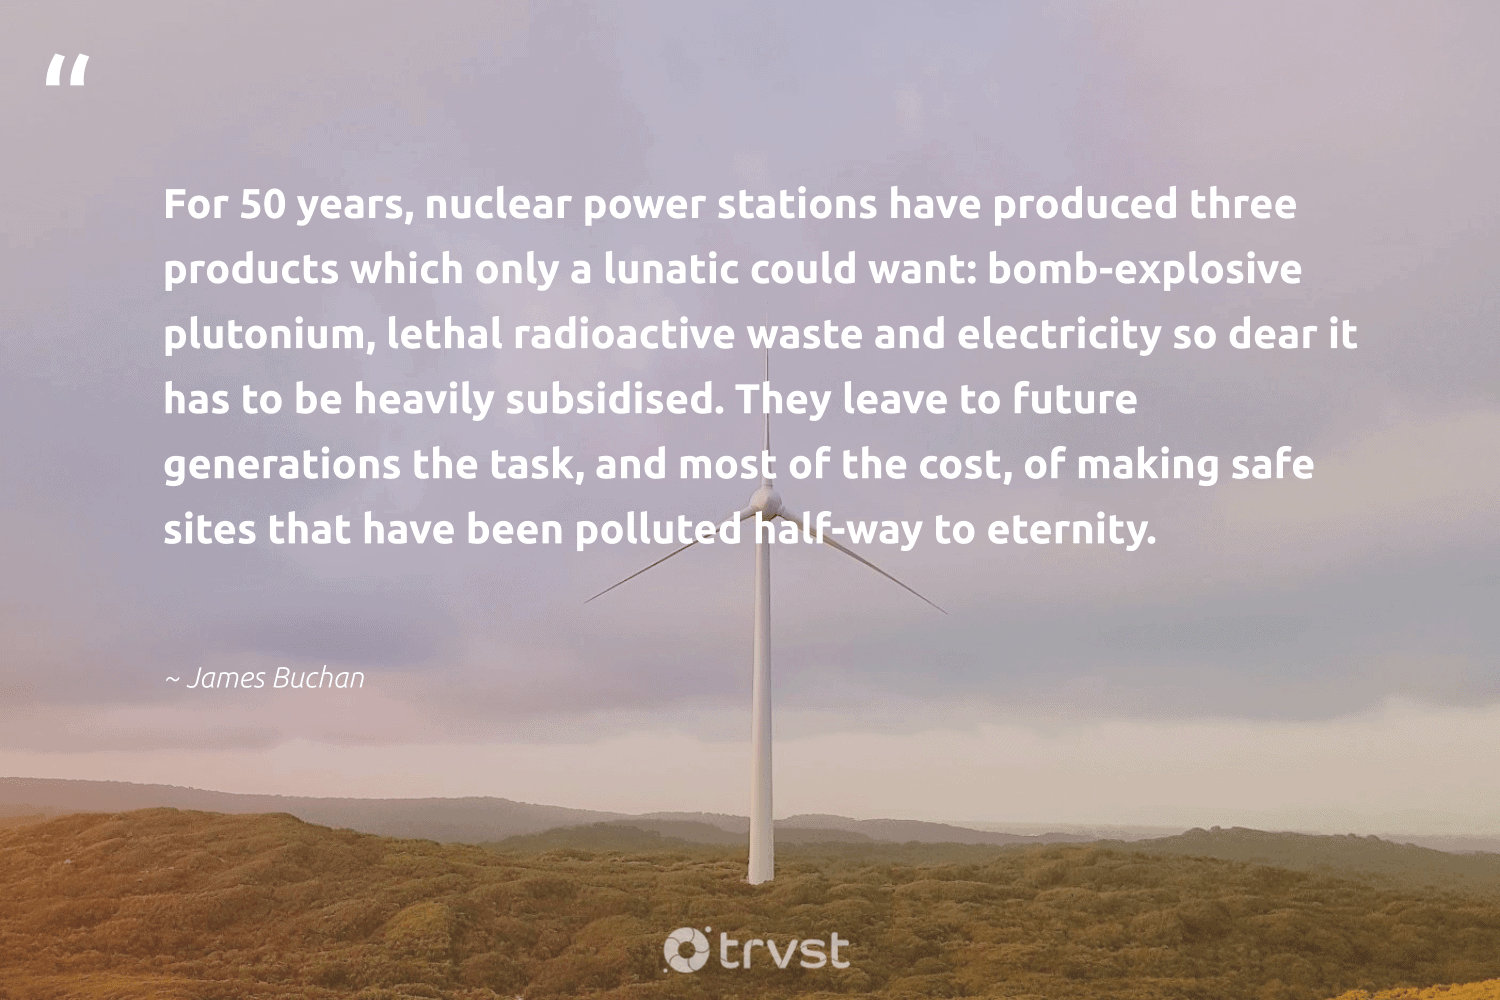 """""""For 50 years, nuclear power stations have produced three products which only a lunatic could want: bomb-explosive plutonium, lethal radioactive waste and electricity so dear it has to be heavily subsidised. They leave to future generations the task, and most of the cost, of making safe sites that have been polluted half-way to eternity.""""  - James Buchan #trvst #quotes #waste #ecoconscious #dotherightthing #climatechangeisreal #gogreen #sustainablefutures #socialimpact #climatefight #impact #globalwarming"""